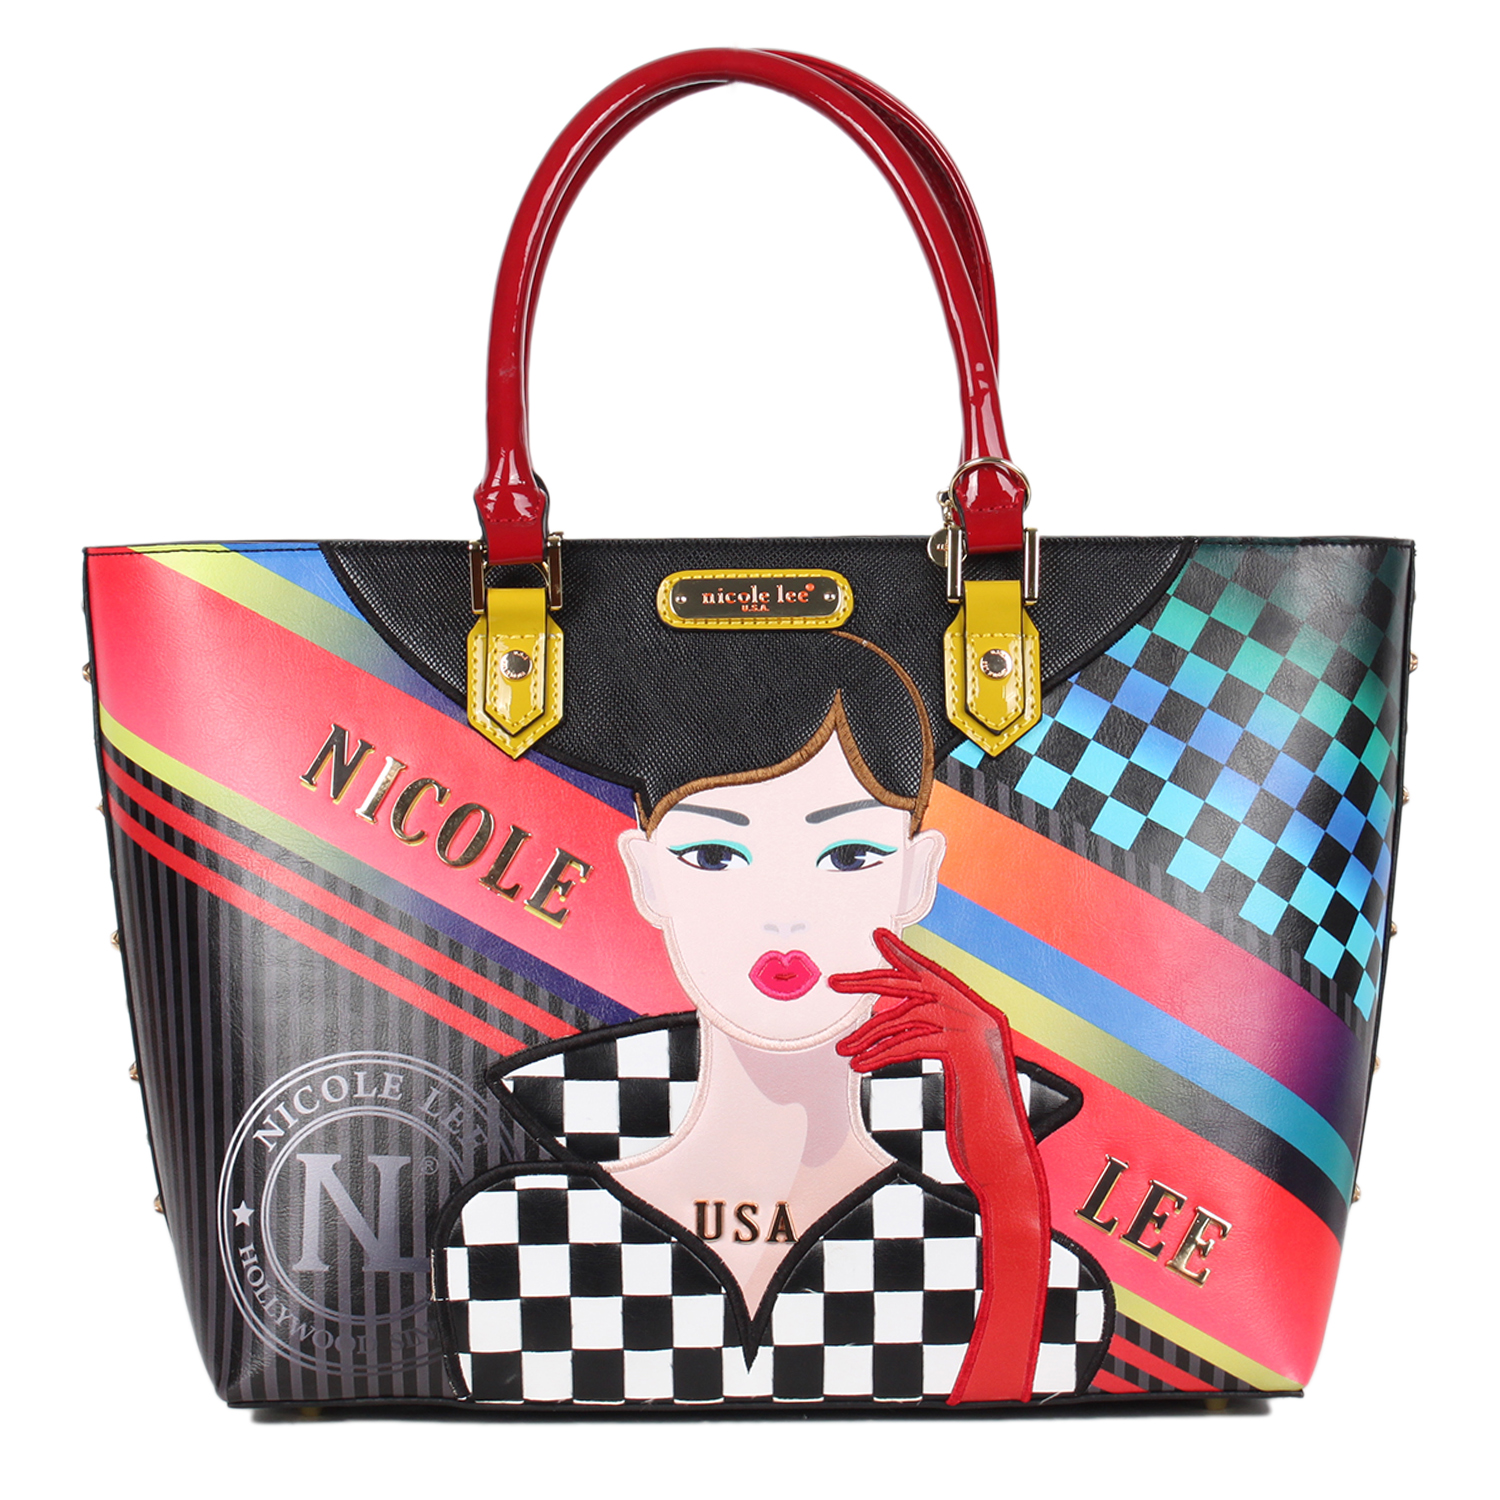 RACING GIRL PRINT SHOPPER BAG